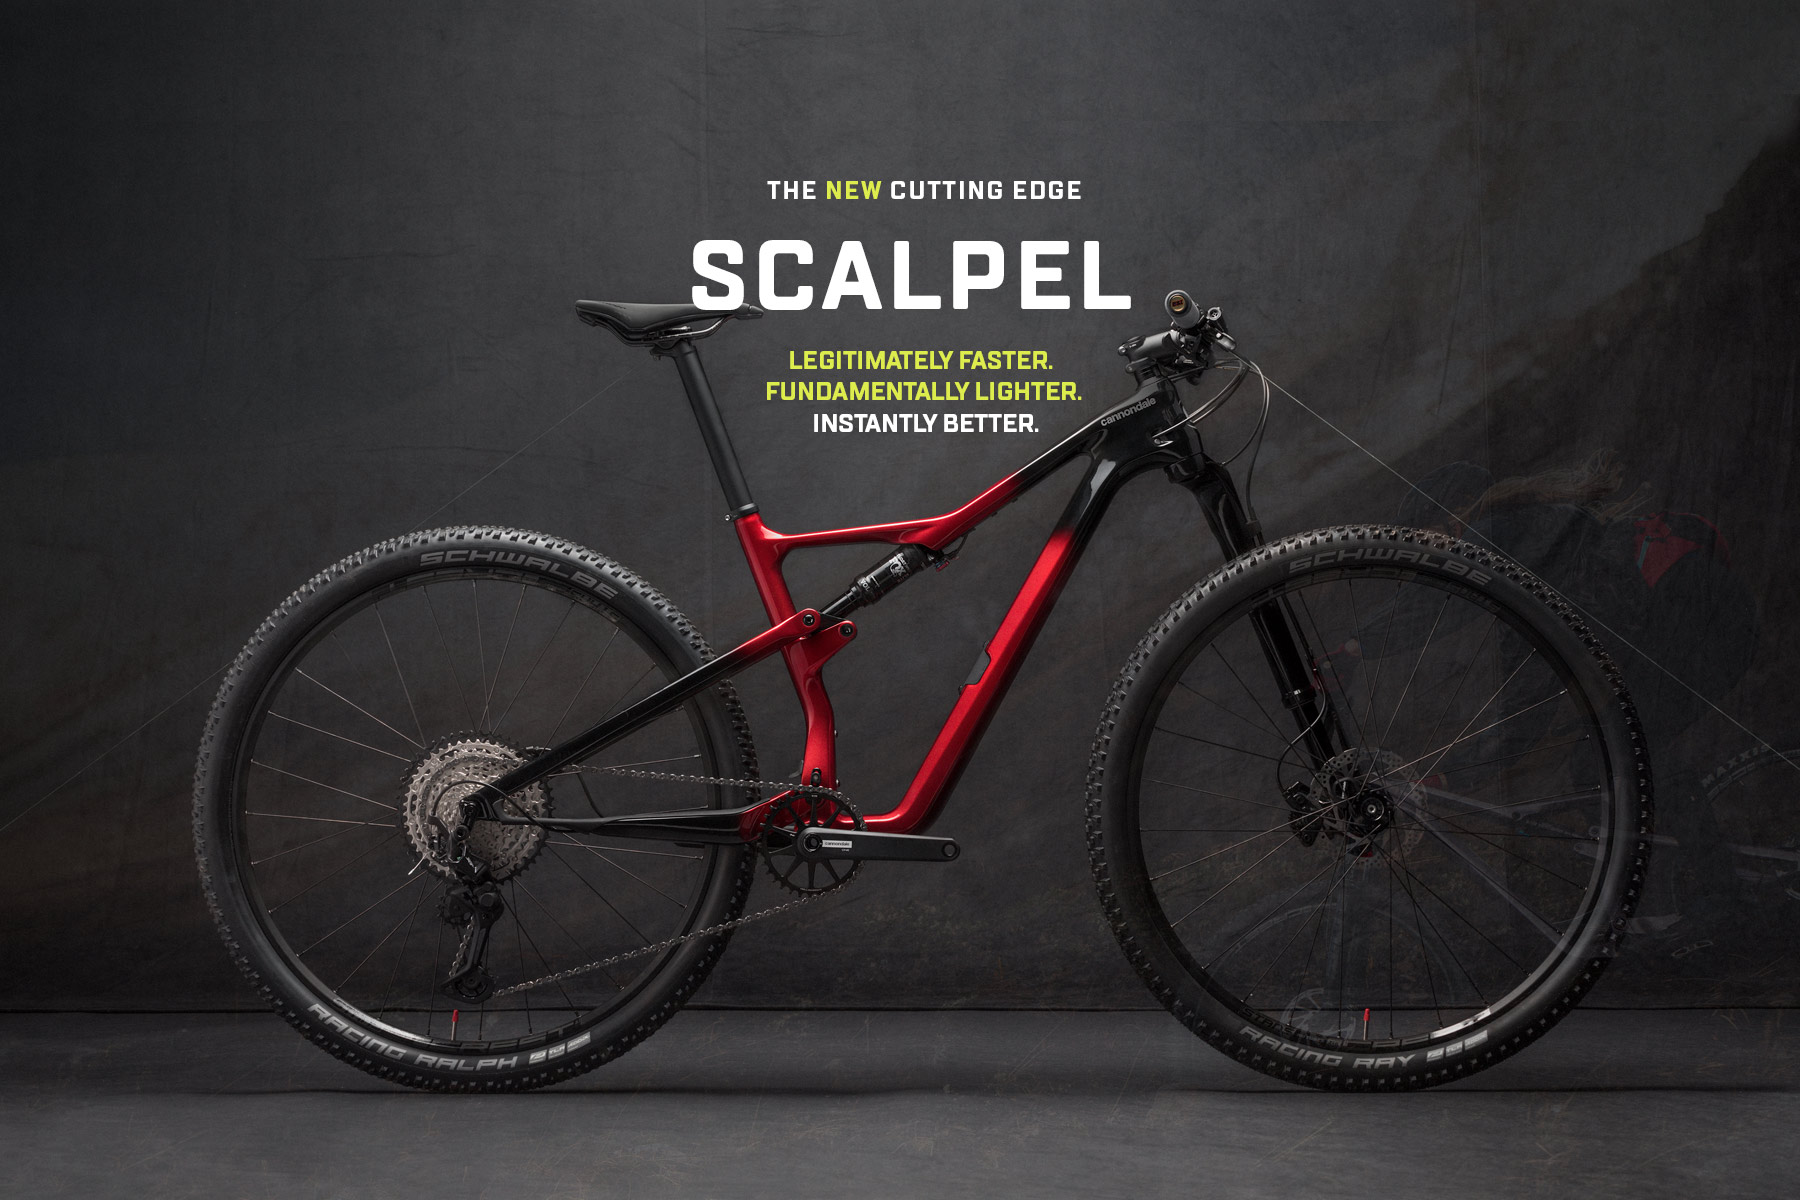 Cannondale Scalpel in black and red fade